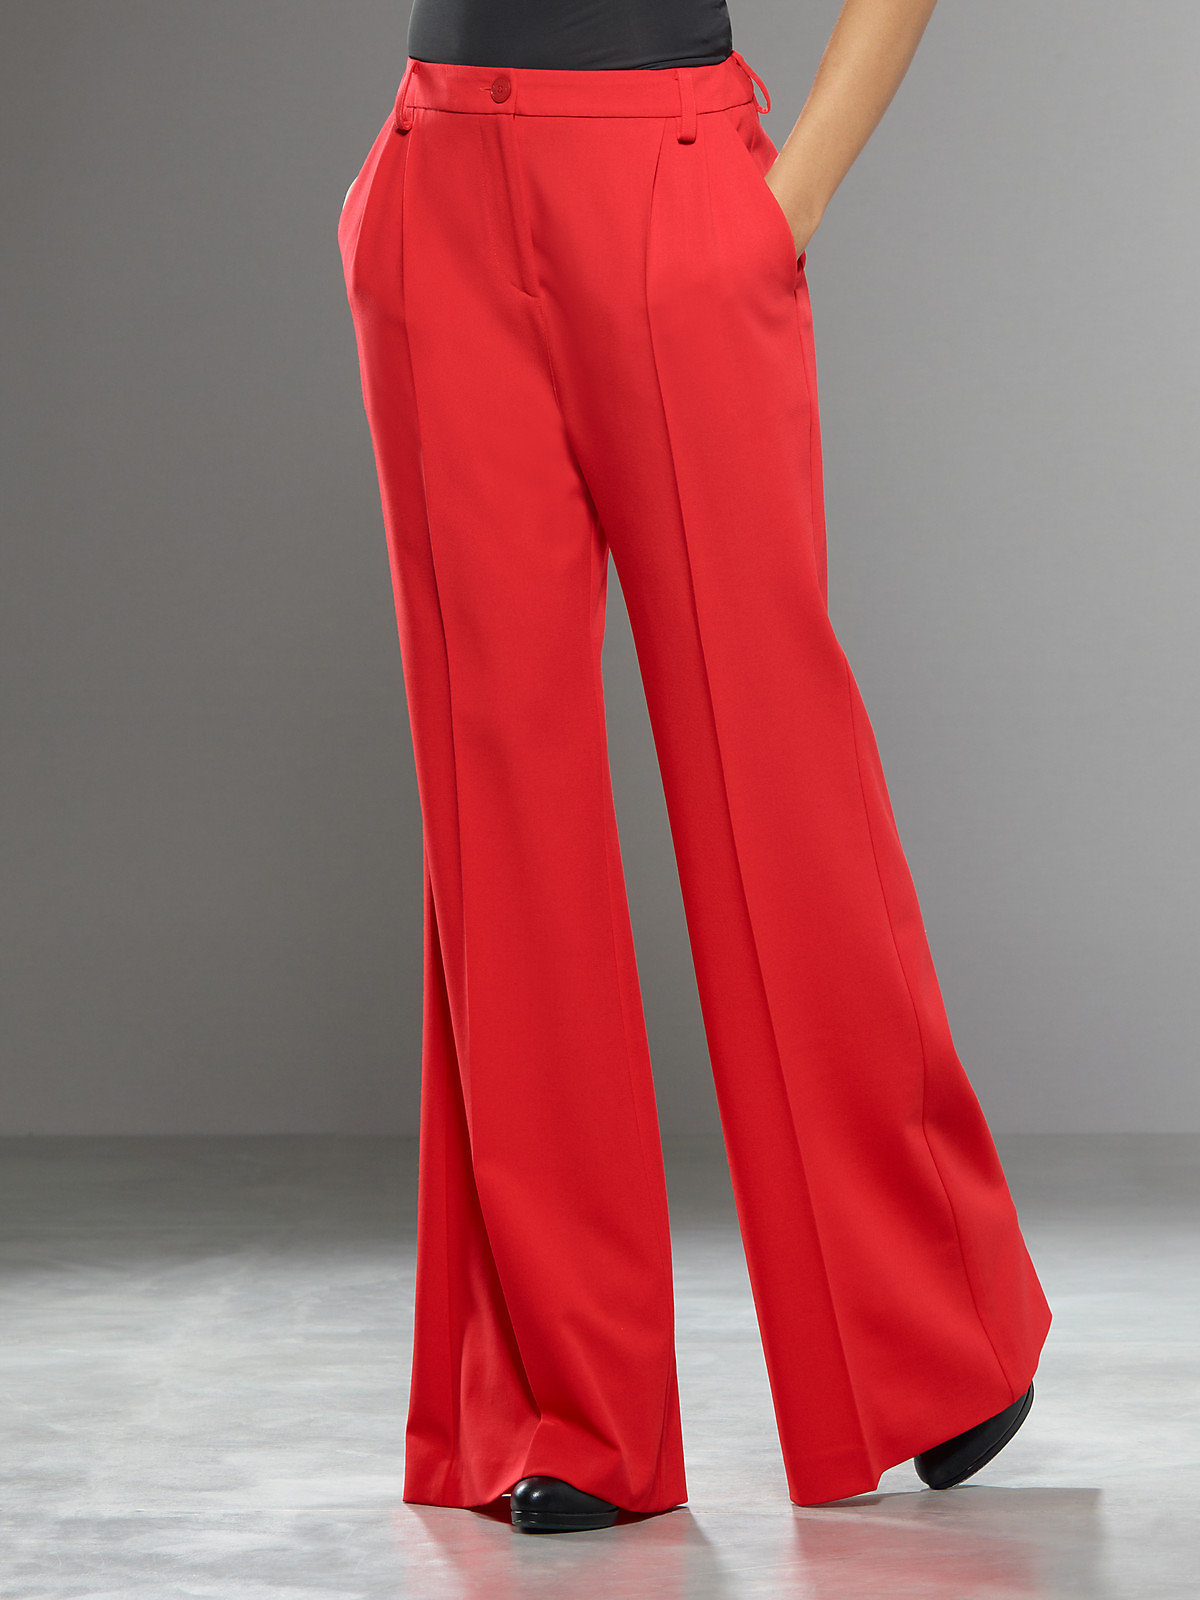 Free shipping red wide leg pants online store. Best red wide leg pants for sale. Cheap red wide leg pants with excellent quality and fast delivery. | shopnow-jl6vb8f5.ga